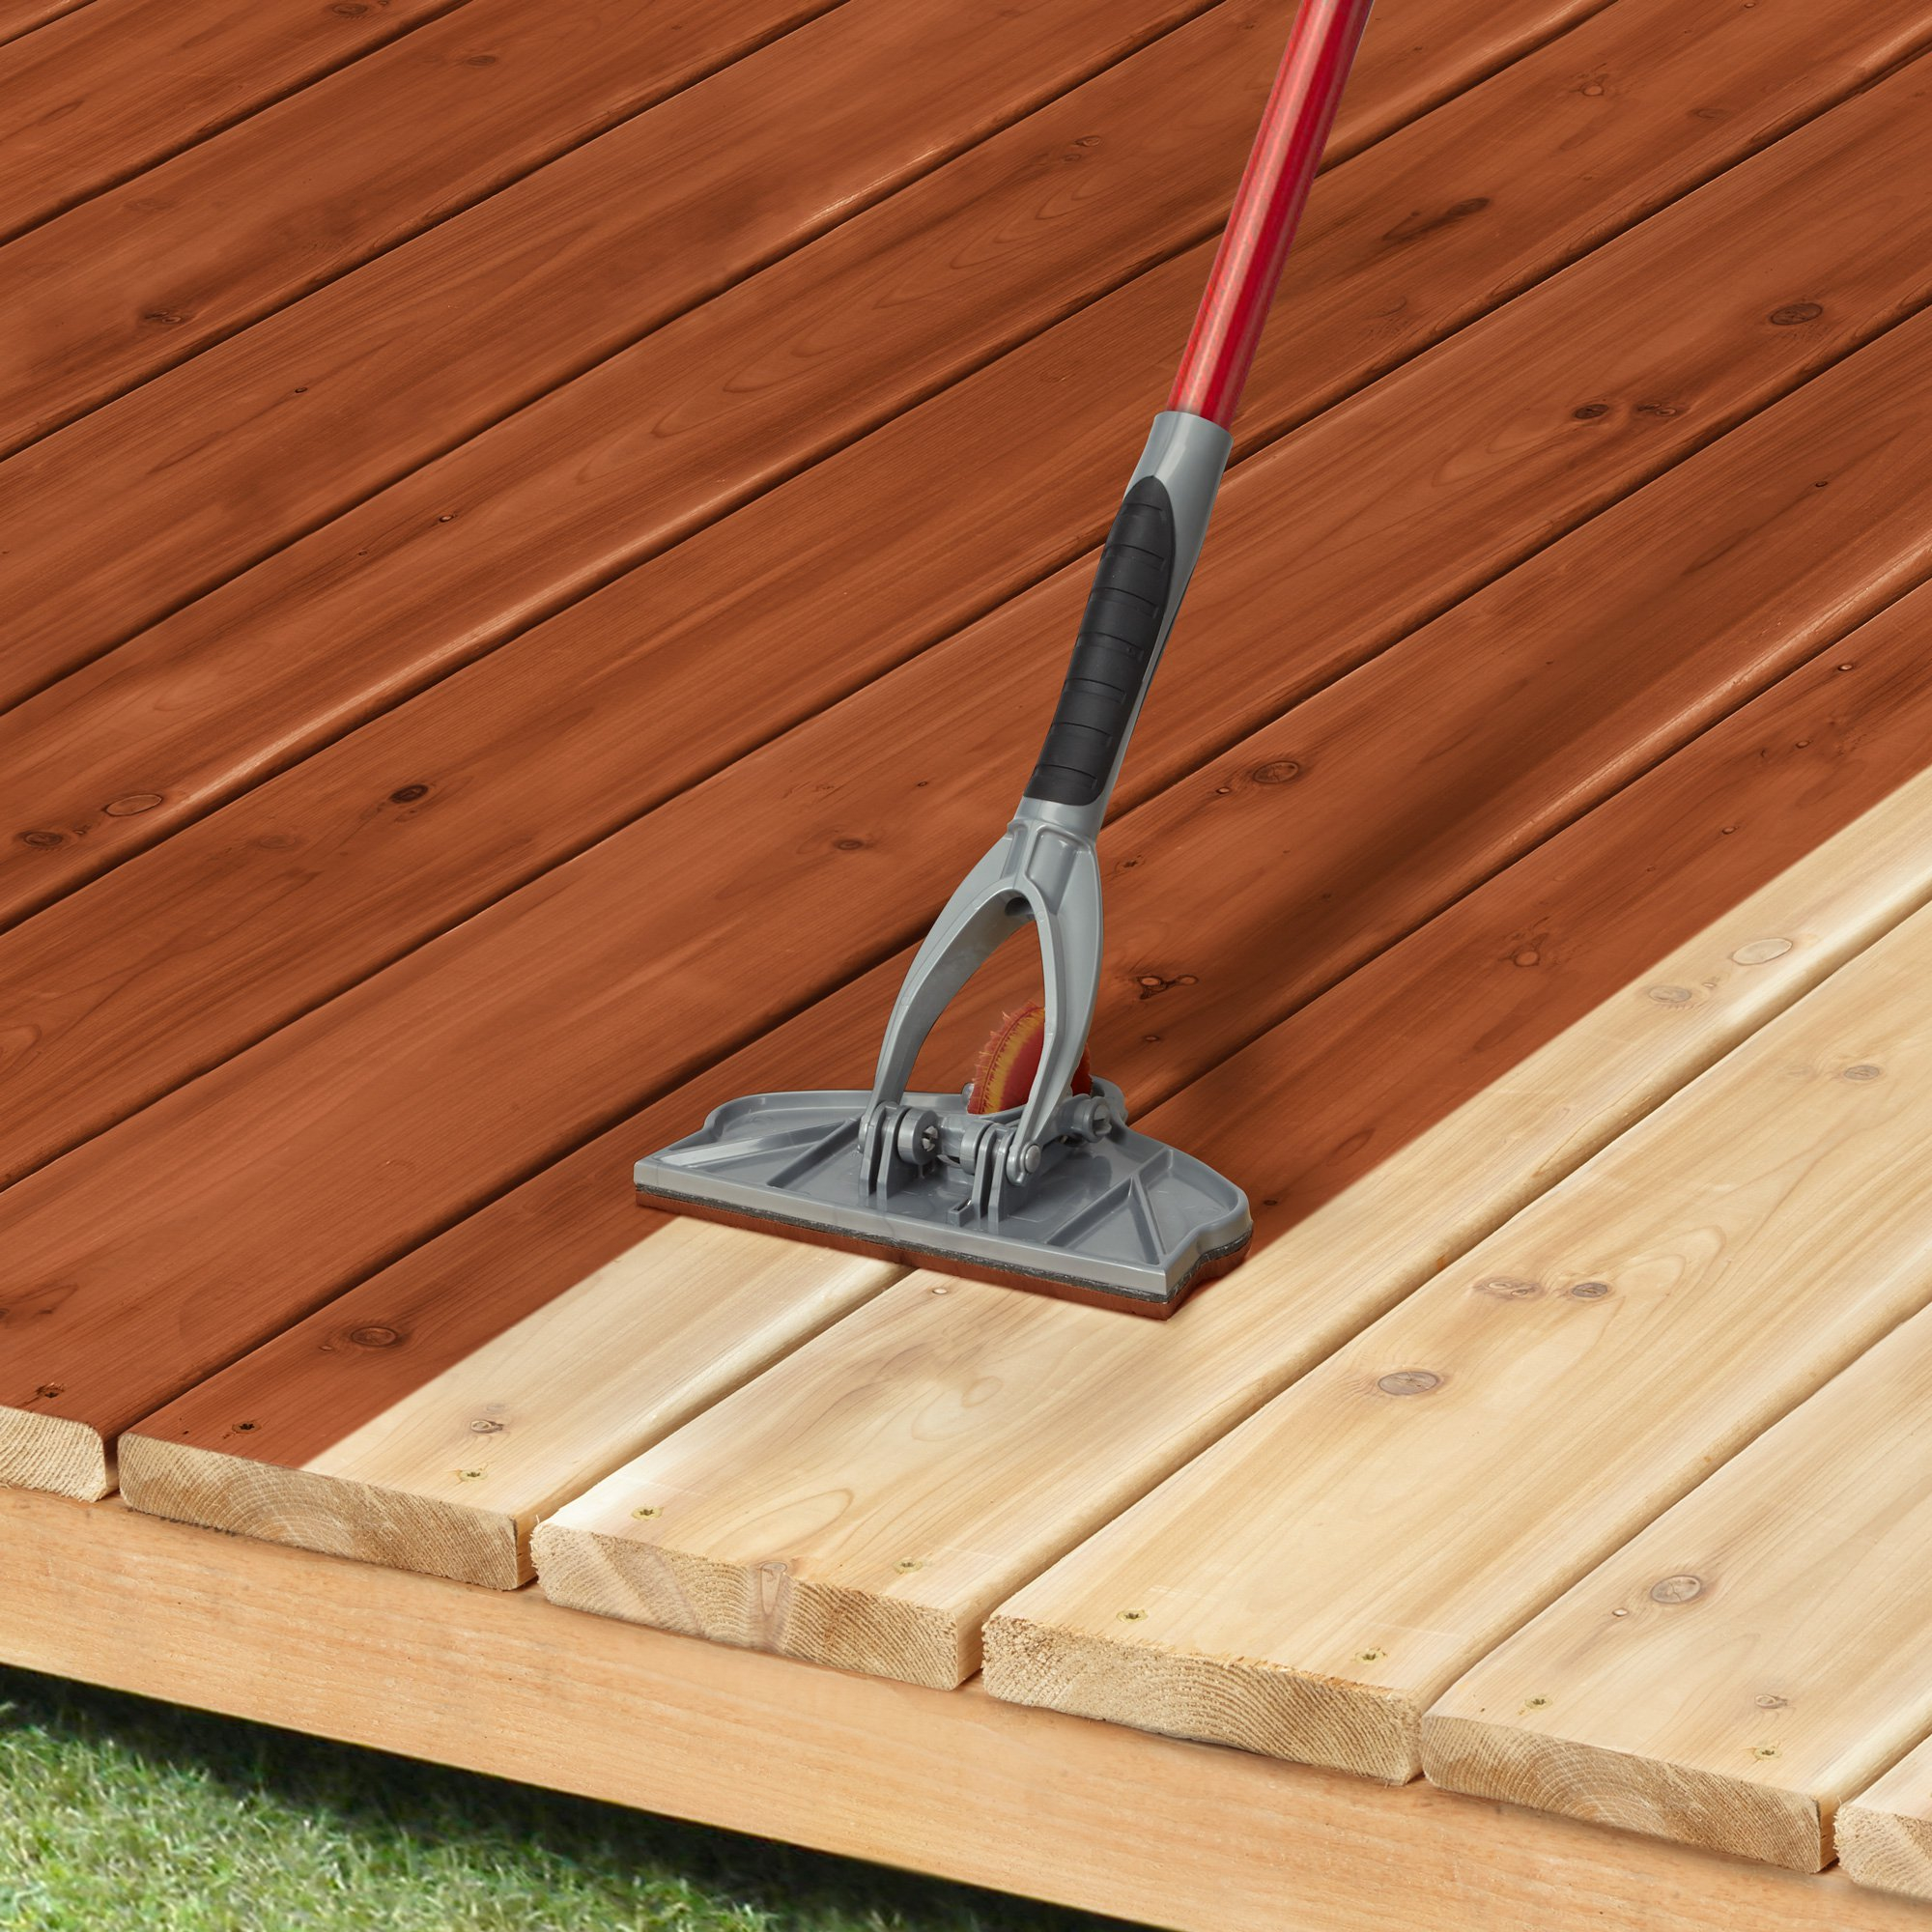 Deck Pro With Gap Wheel Stain Applicator For Staining Between Boards throughout size 2000 X 2000